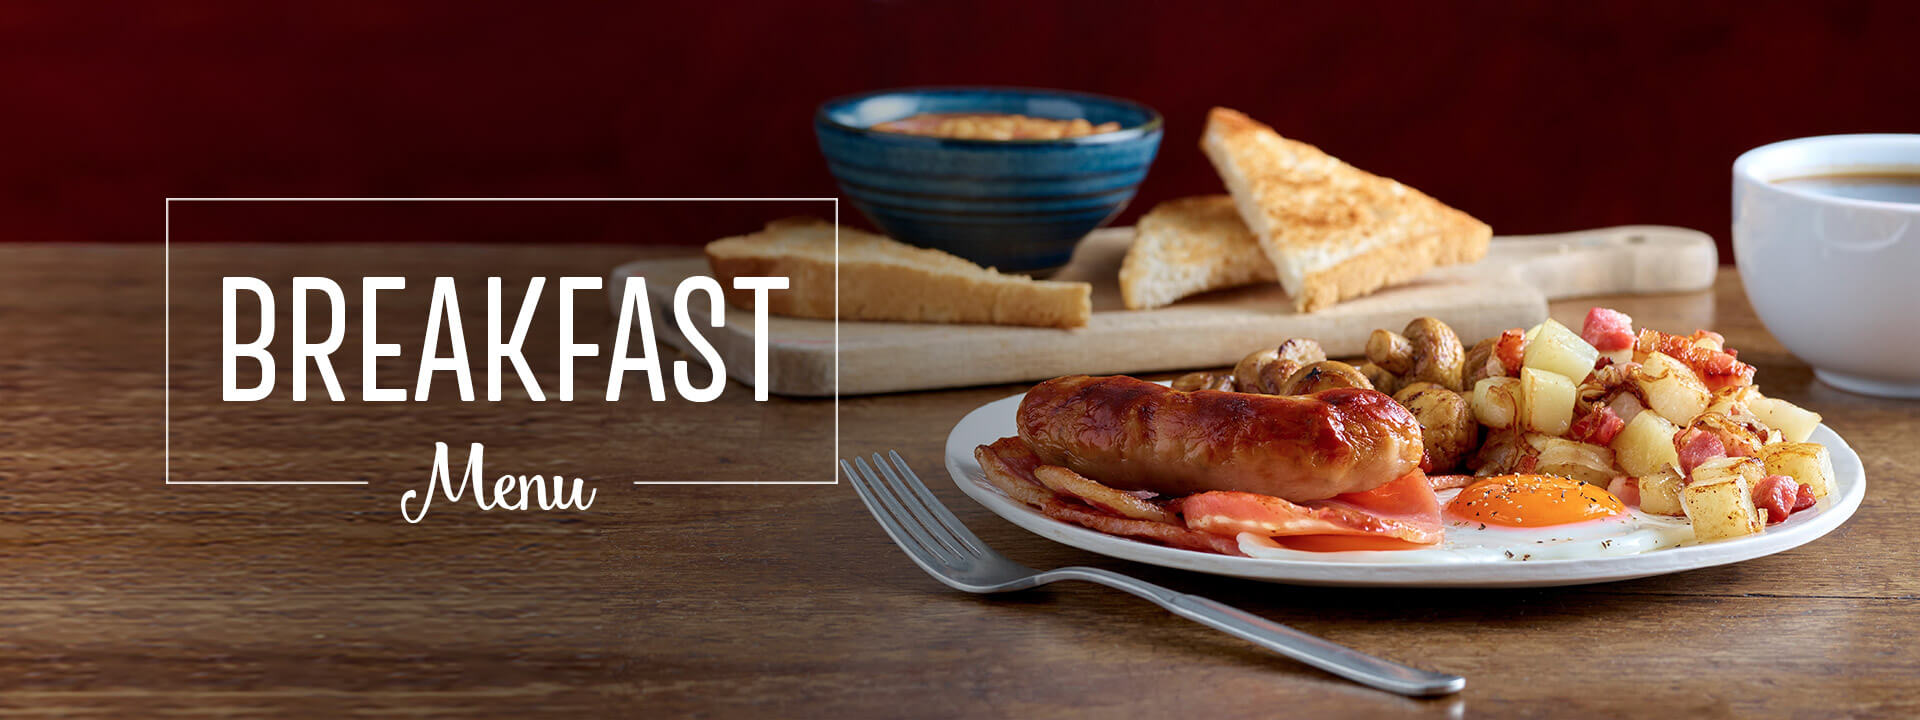 Breakfast at Toby Carvery Kenton Bank - Book Now